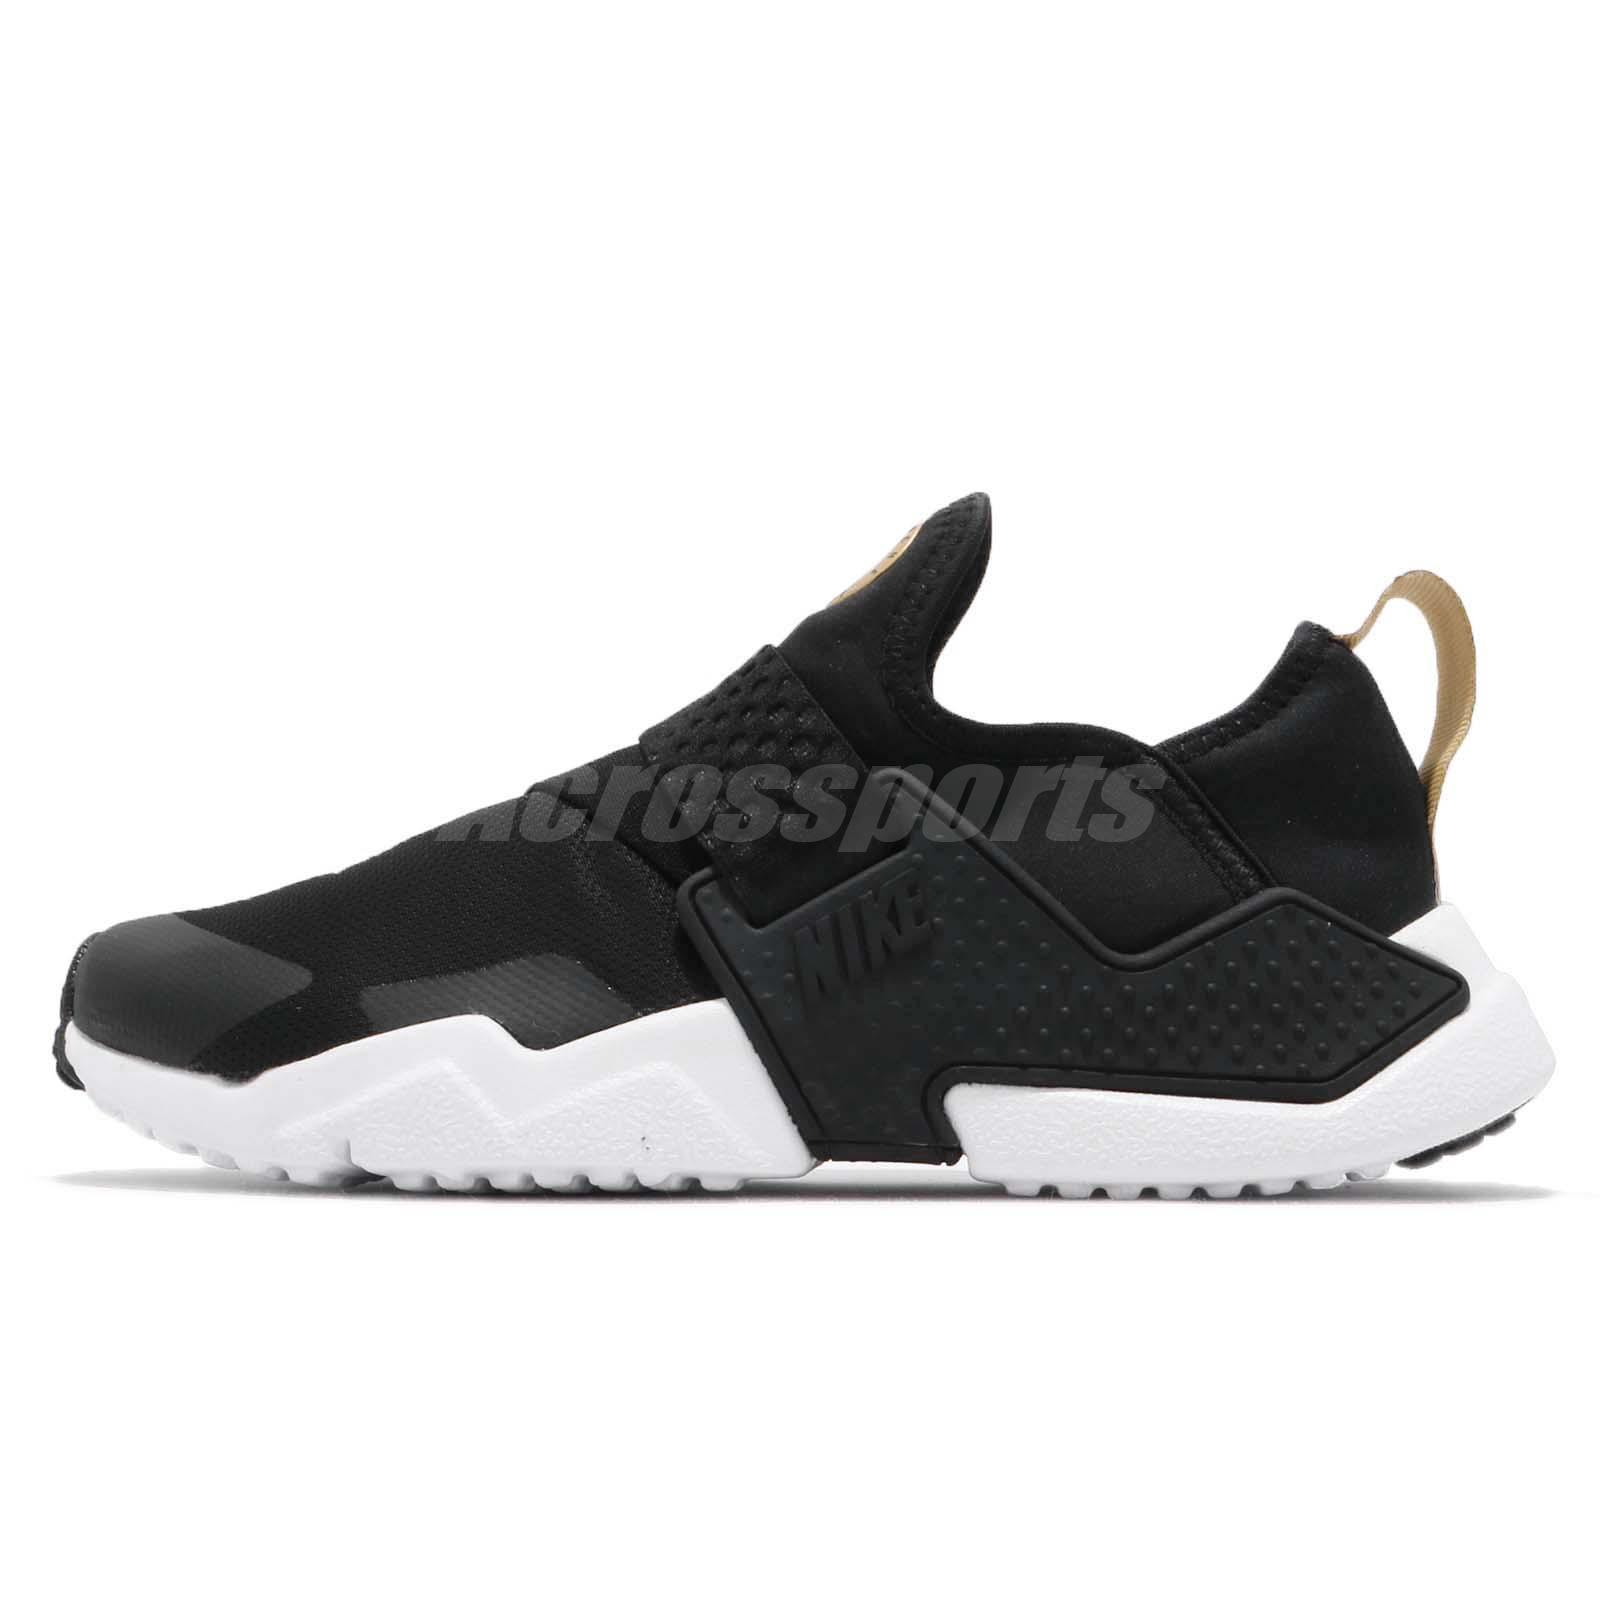 pretty nice aee68 547fe ... low price nike huarache extreme gs black white gold kid youth women  slip on aq0575 007